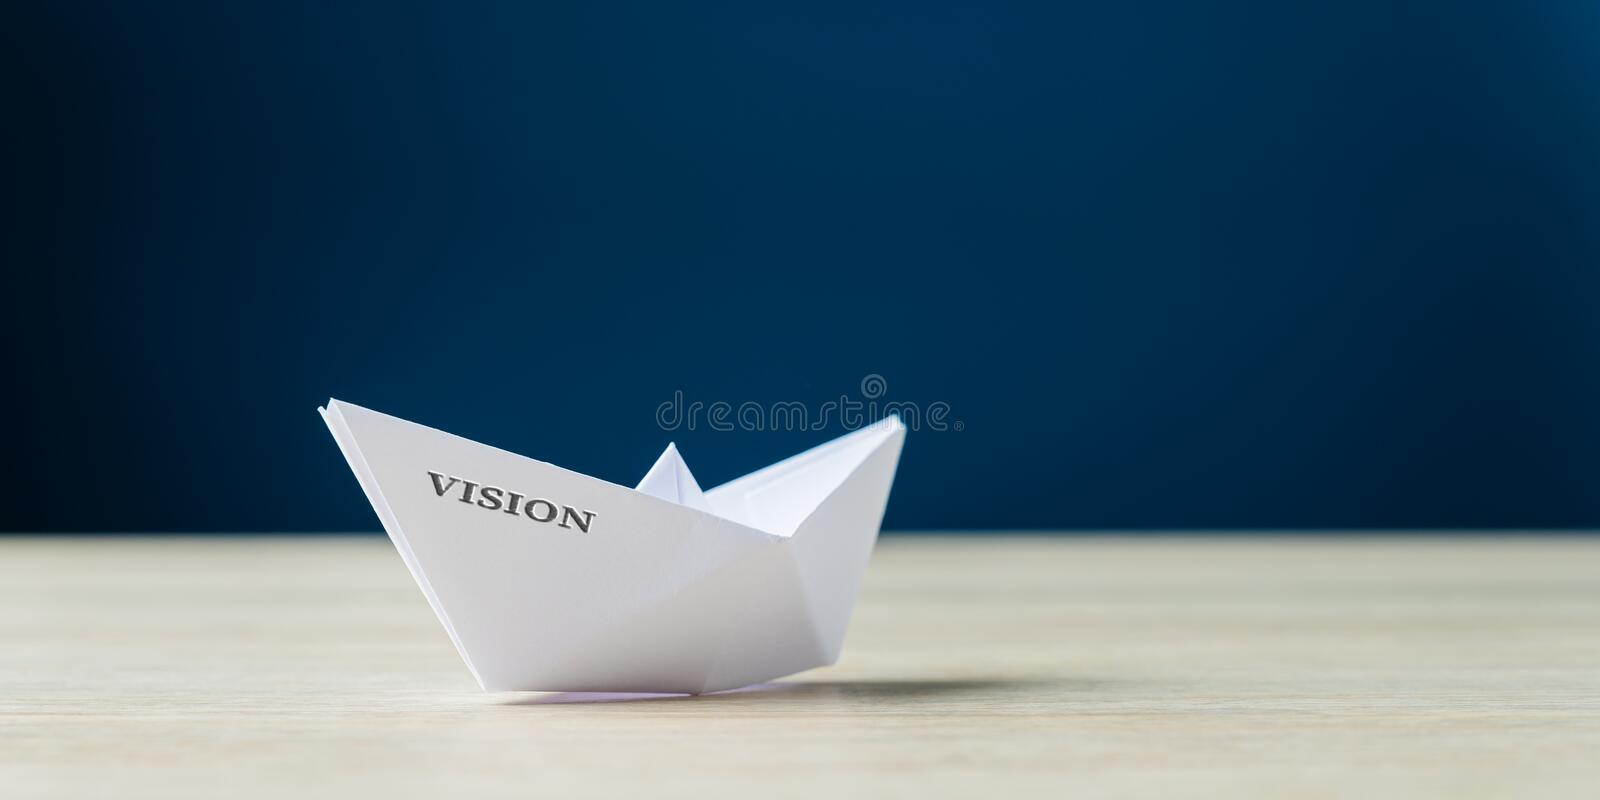 Origami boat with the word Vision on it royalty free stock images